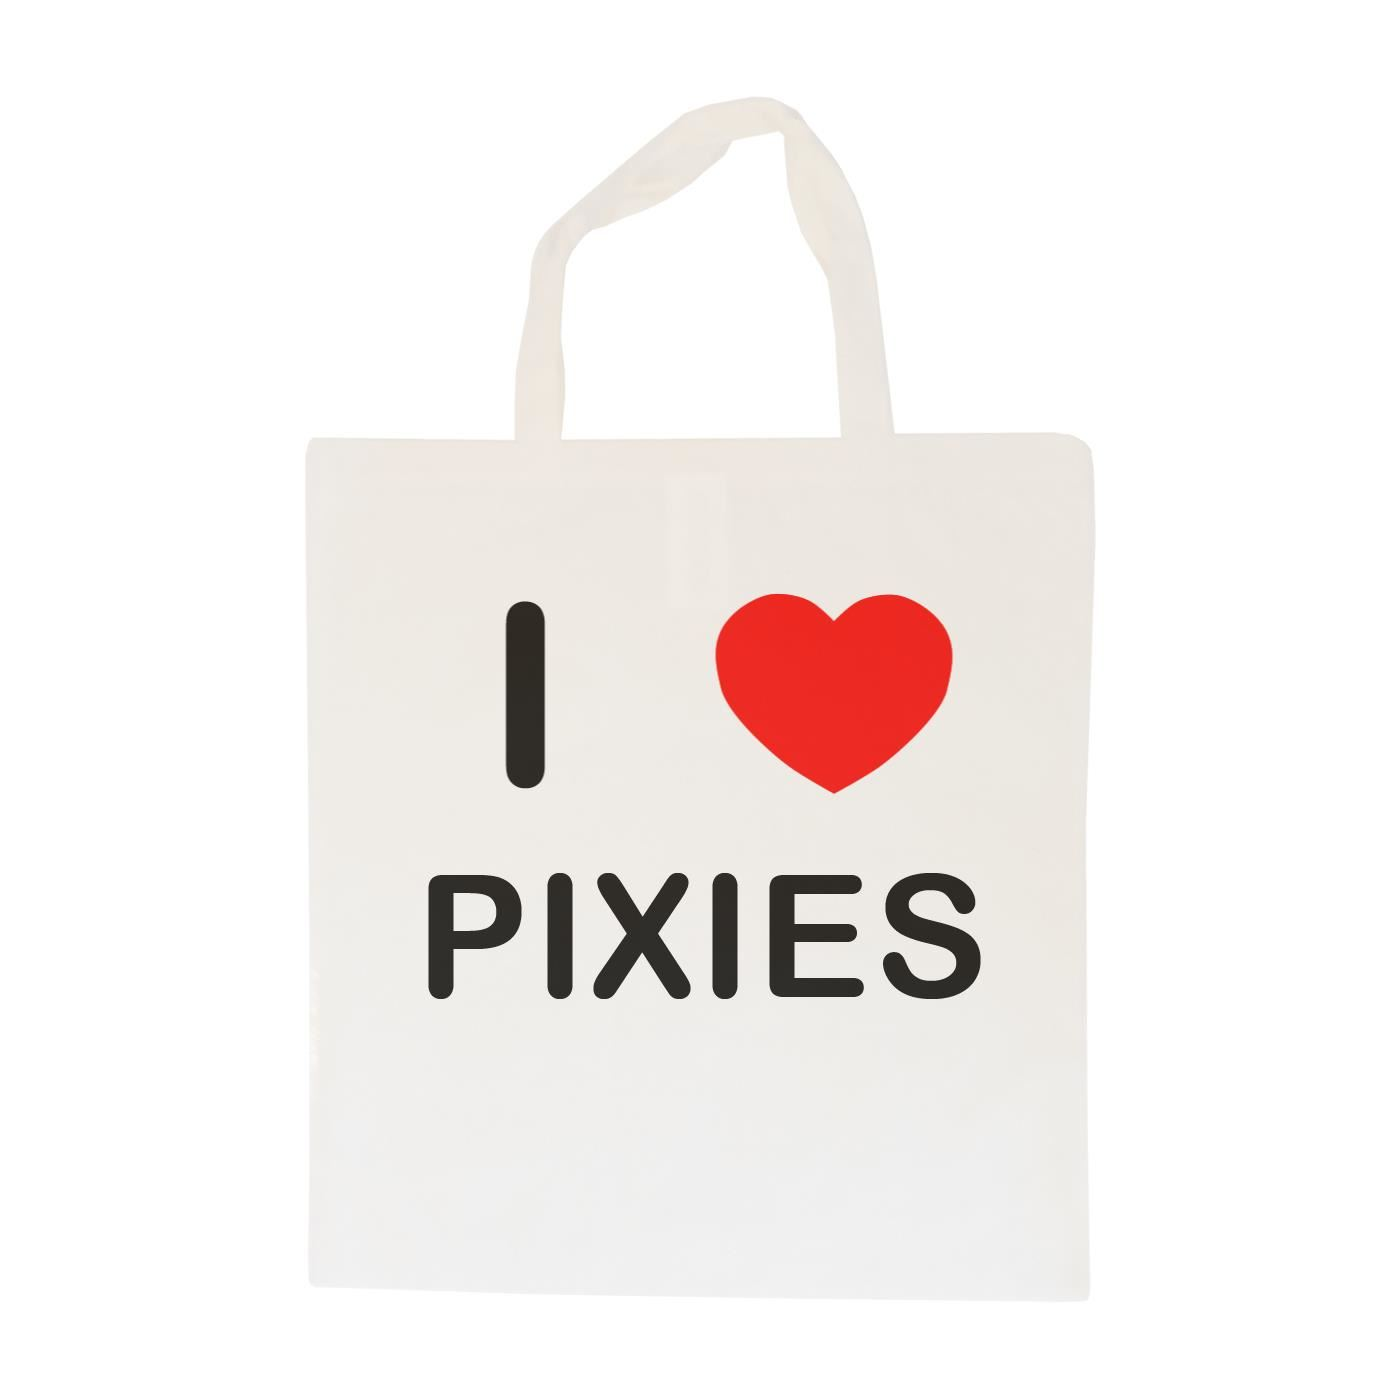 I Love Pixies - Cotton Bag | Size choice Tote, Shopper or Sling